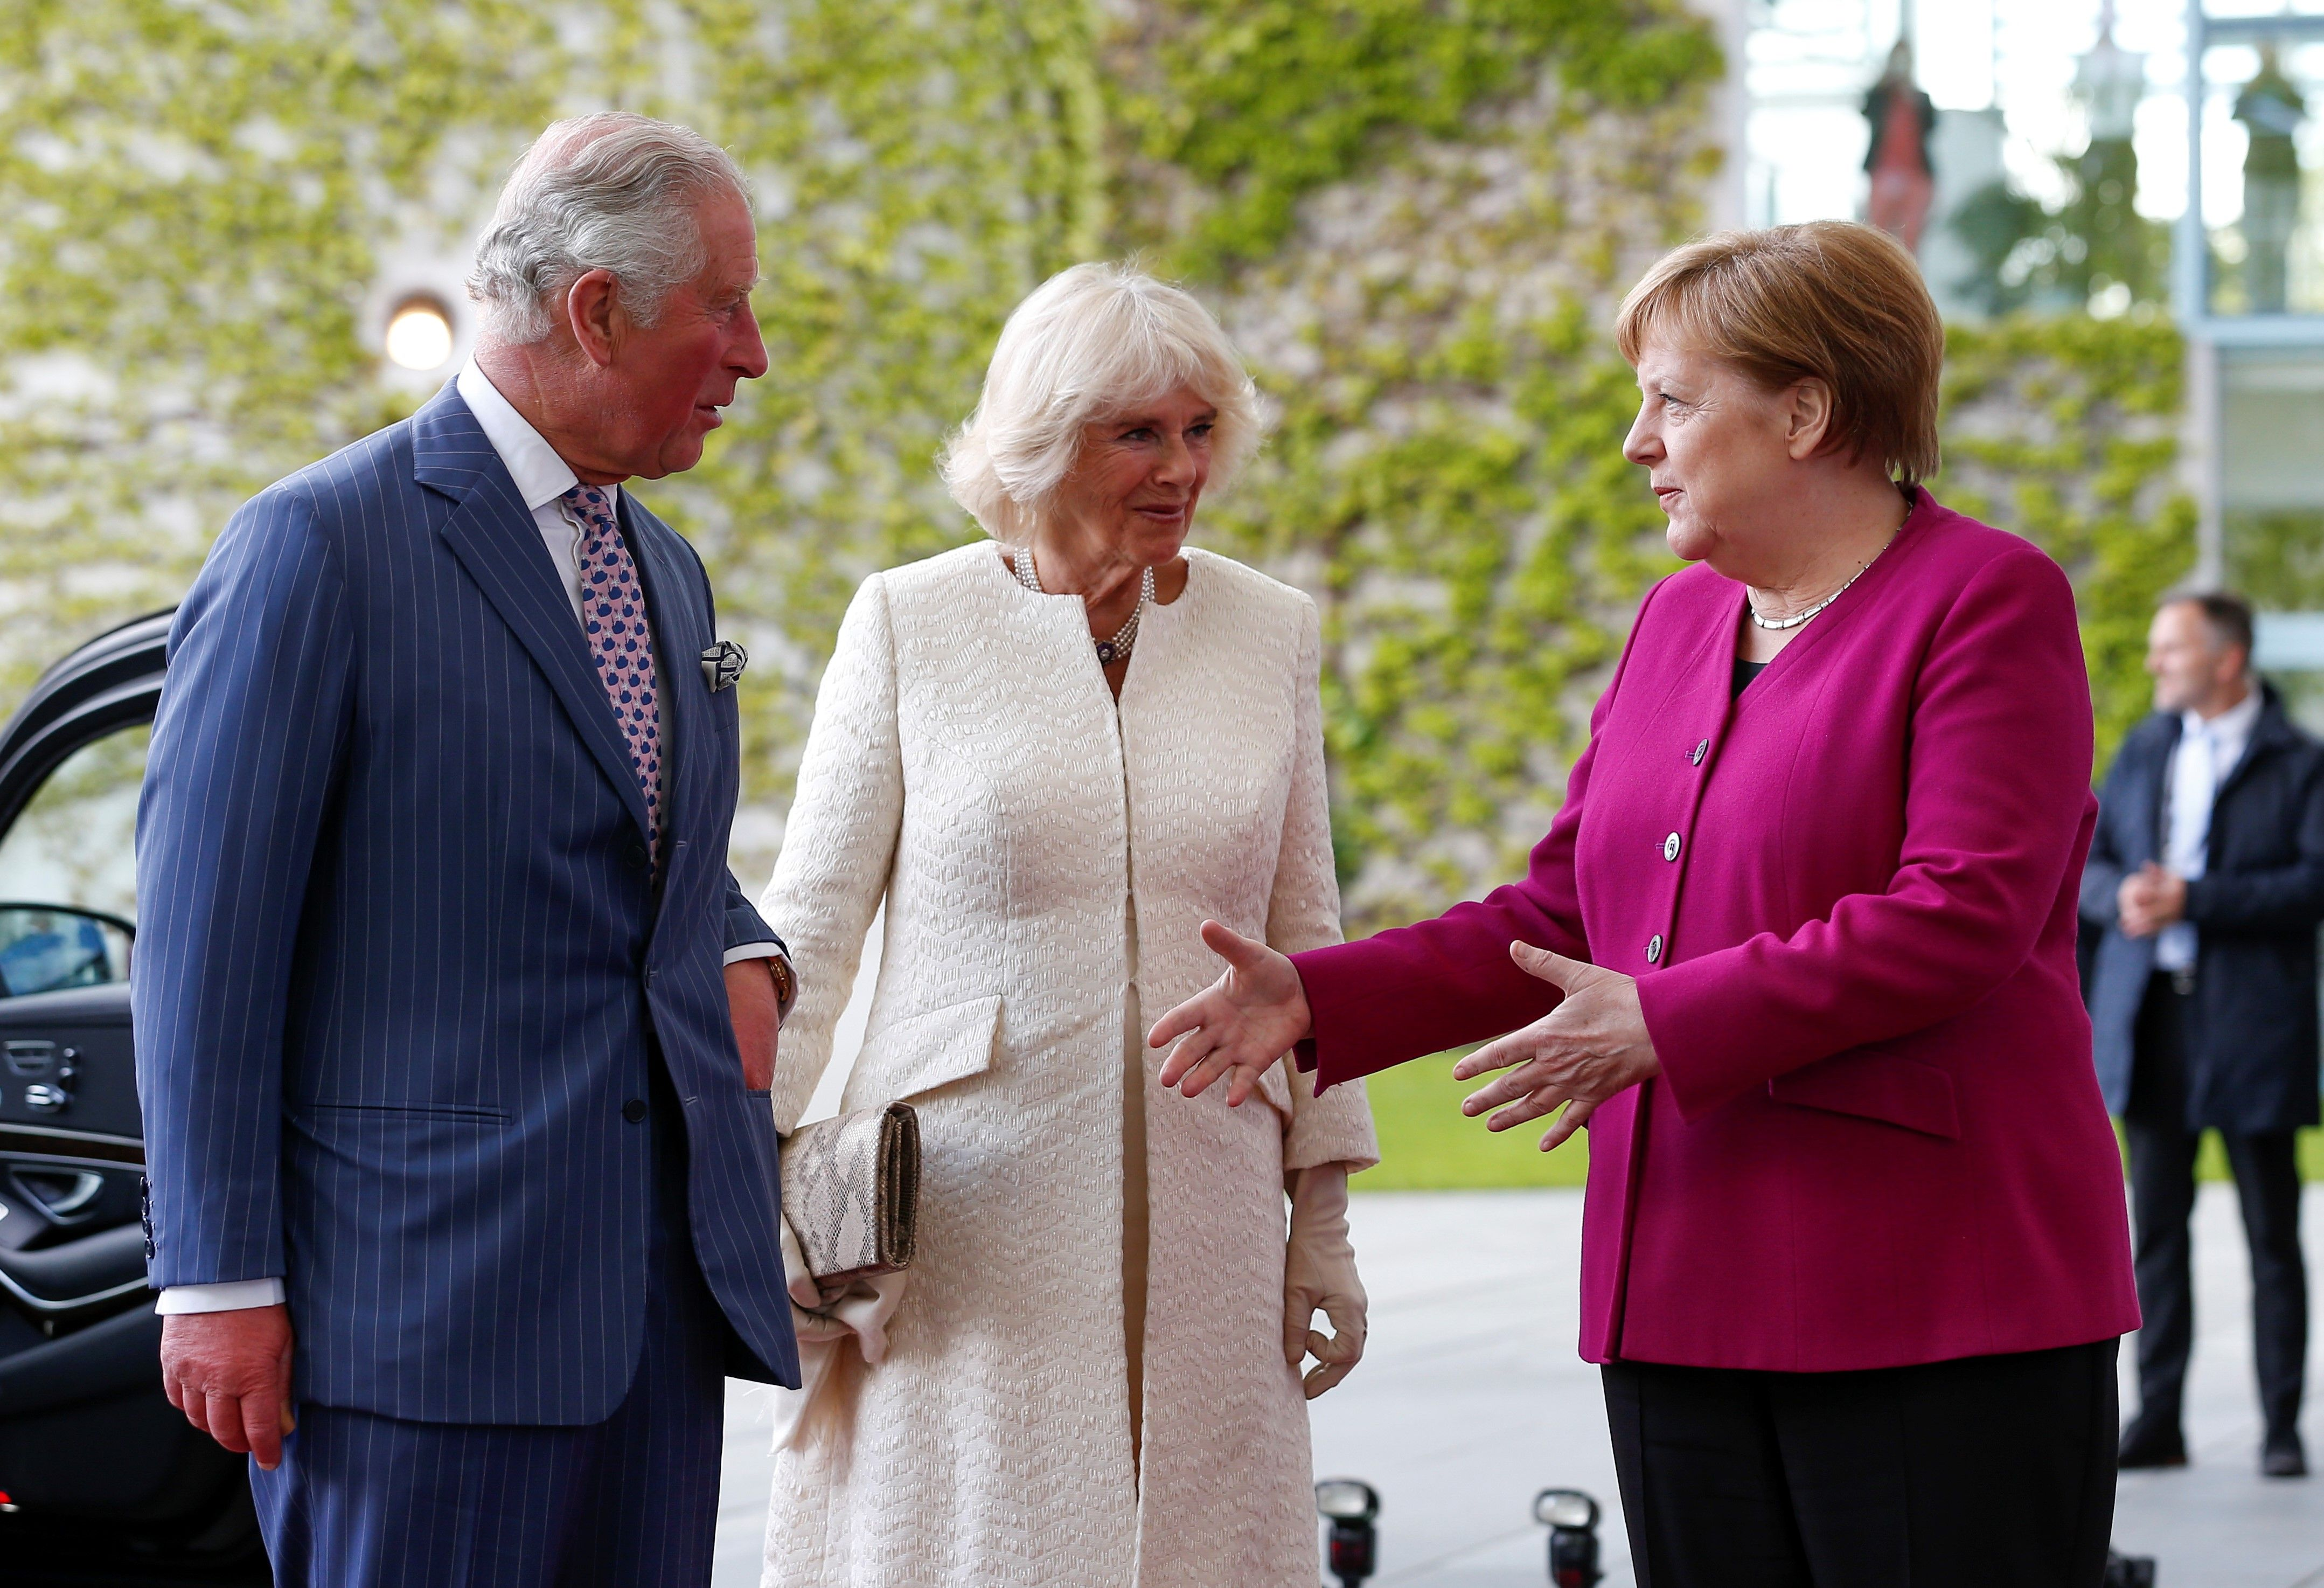 German Chancellor Angela Merkel welcomes Prince Charles and Duchess of Cornwall Camilla to Germany. While in the country, the royal couple will visit Berlin, Munich, and Leipzig.